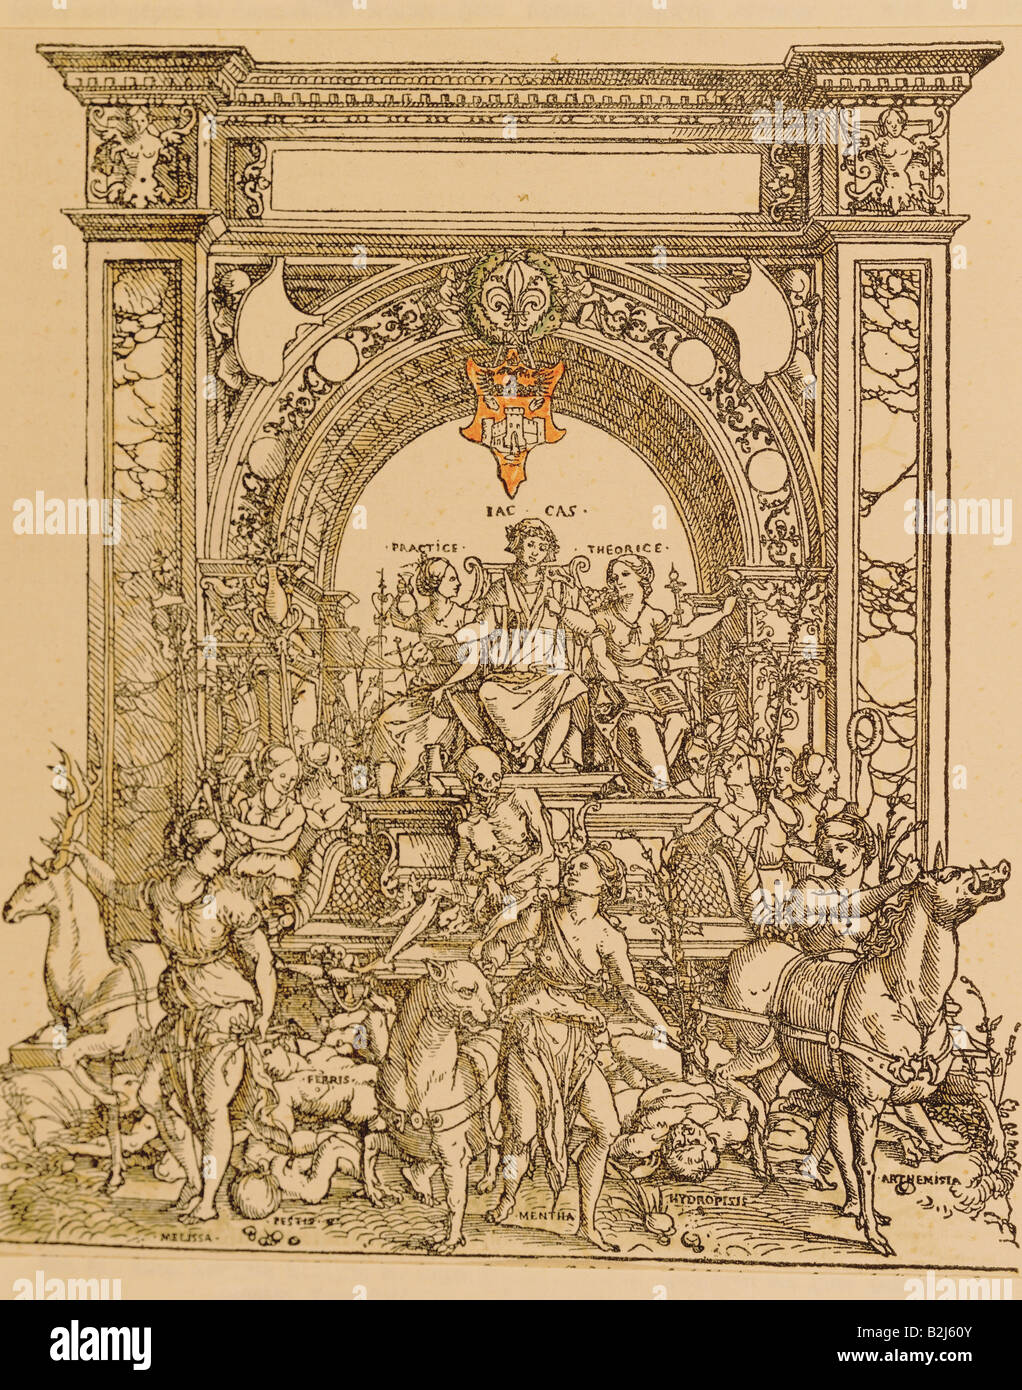 medicine, allegories, successes of the physician Jacobus Castricus ald Italian thriumphal procession, woodcut by - Stock Image